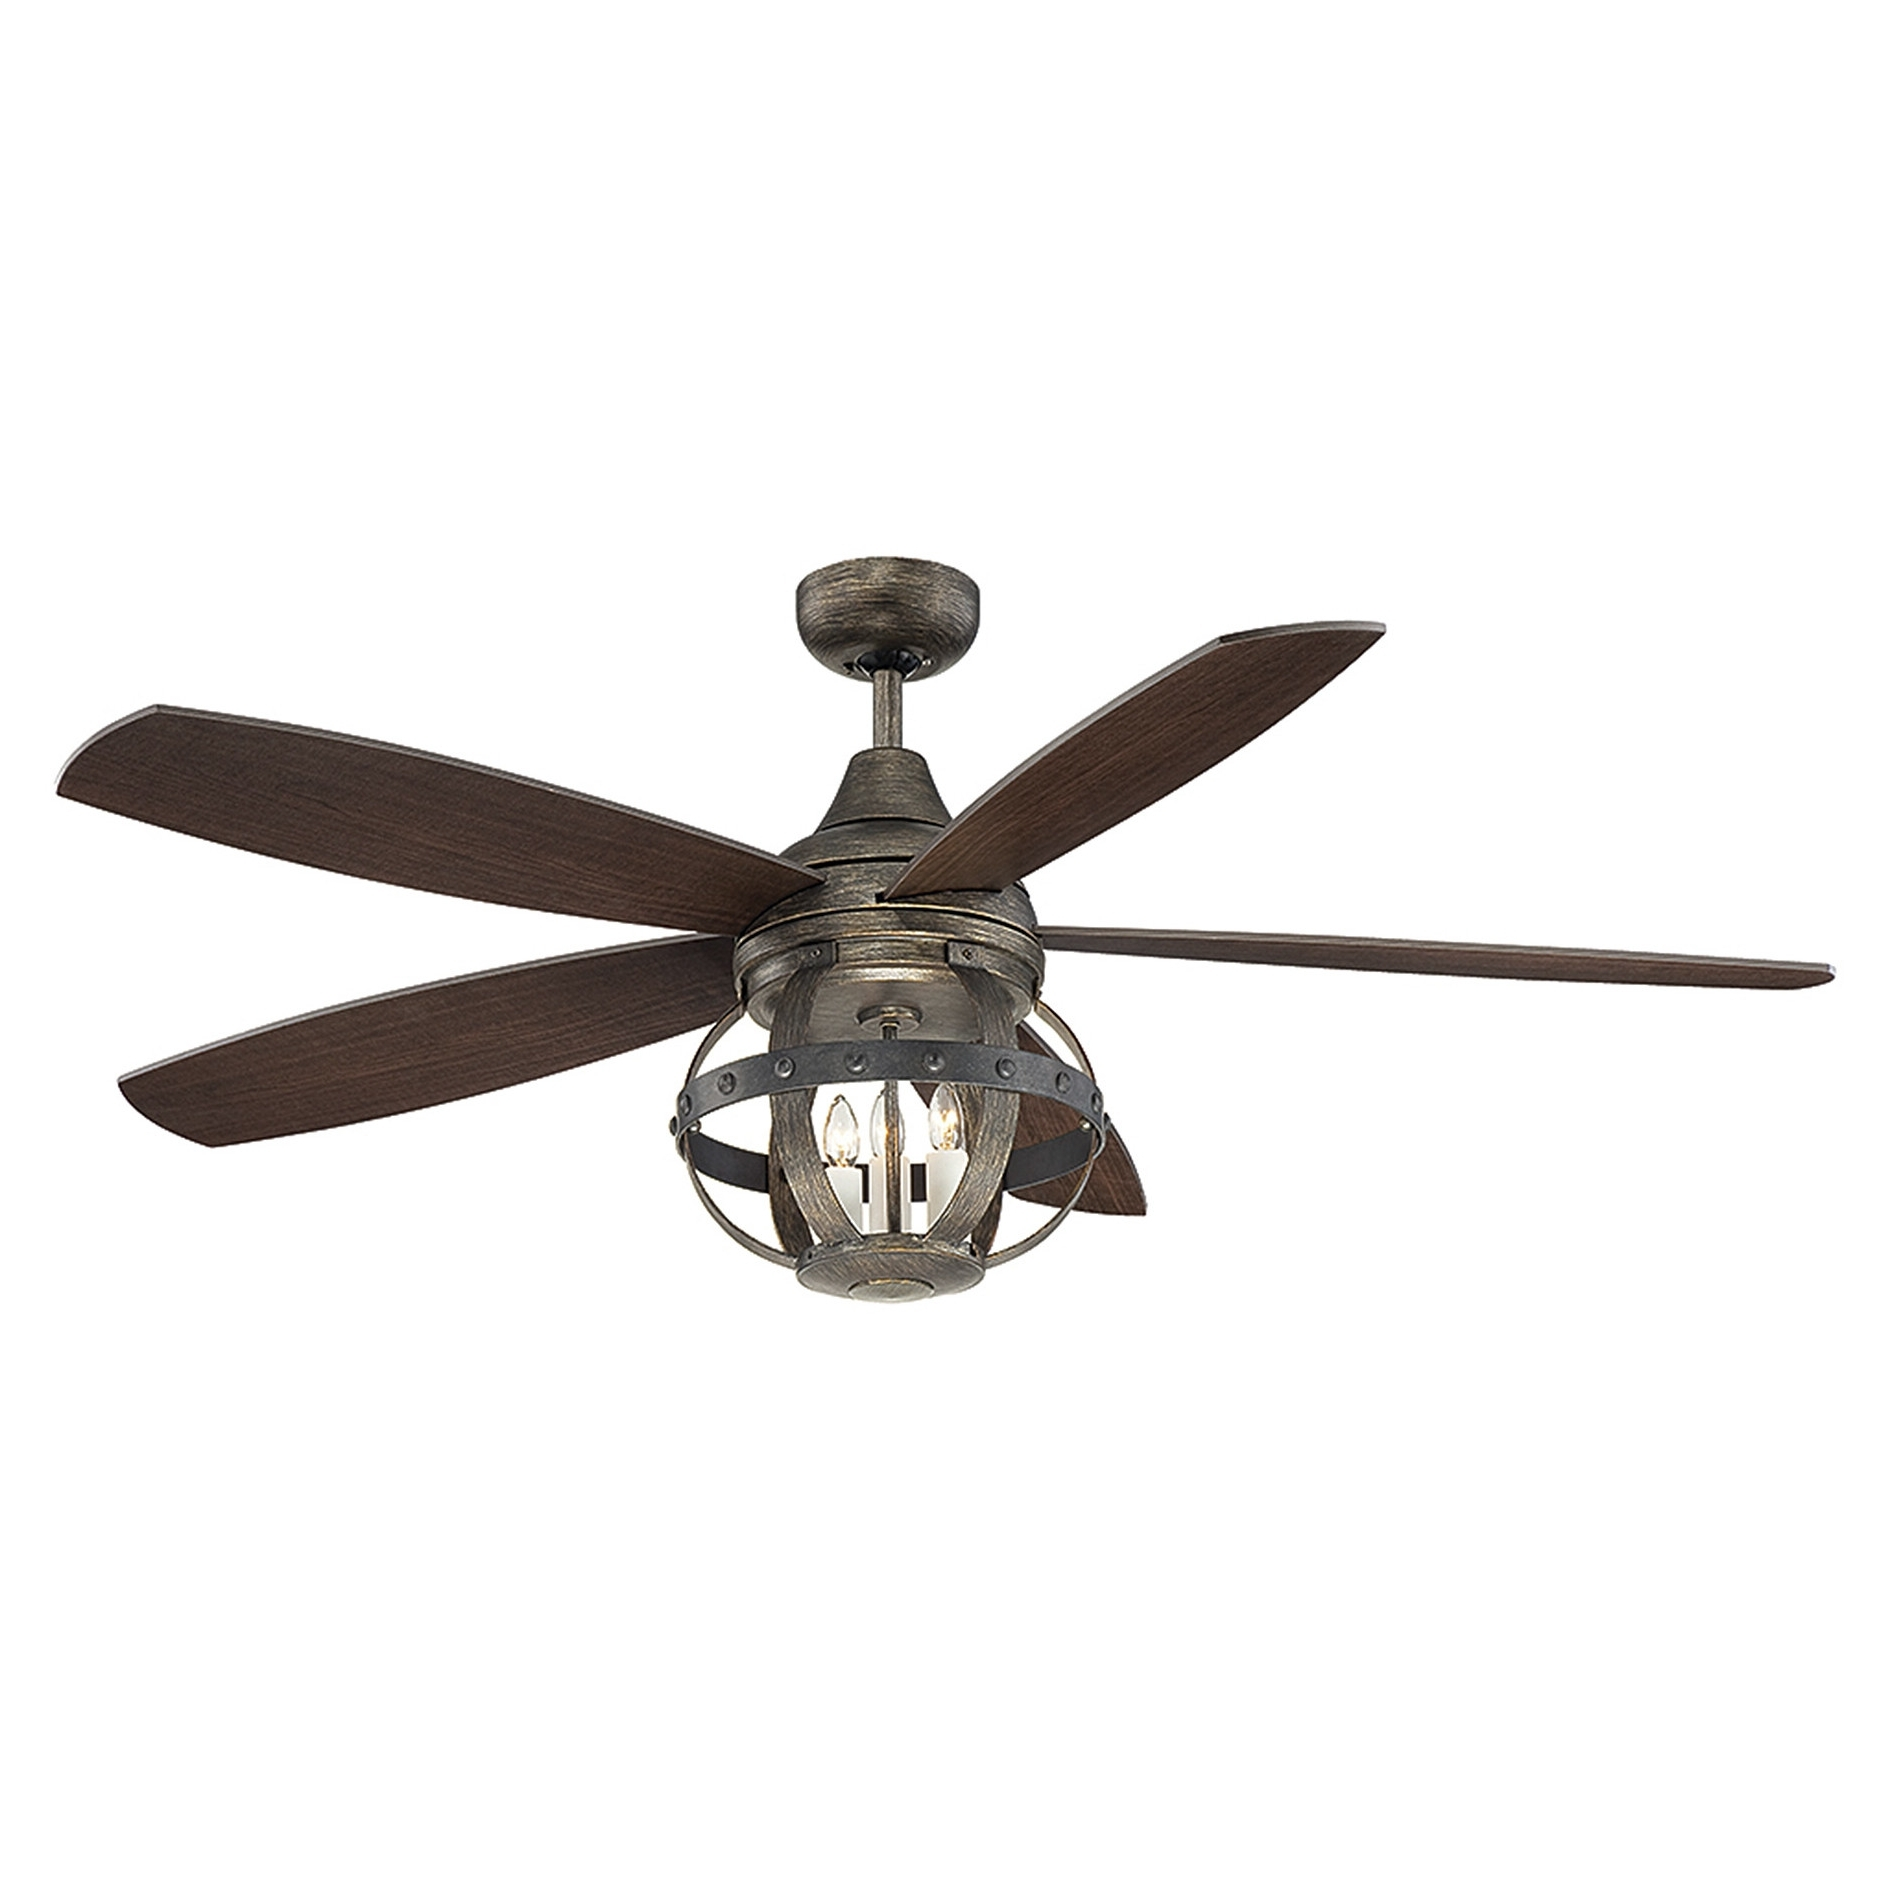 Outdoor Ceiling Fans With Lights At Home Depot Inside Preferred Ceiling: Amazing 60 Inch Outdoor Ceiling Fan 60 Inch Ceiling Fans (View 12 of 20)